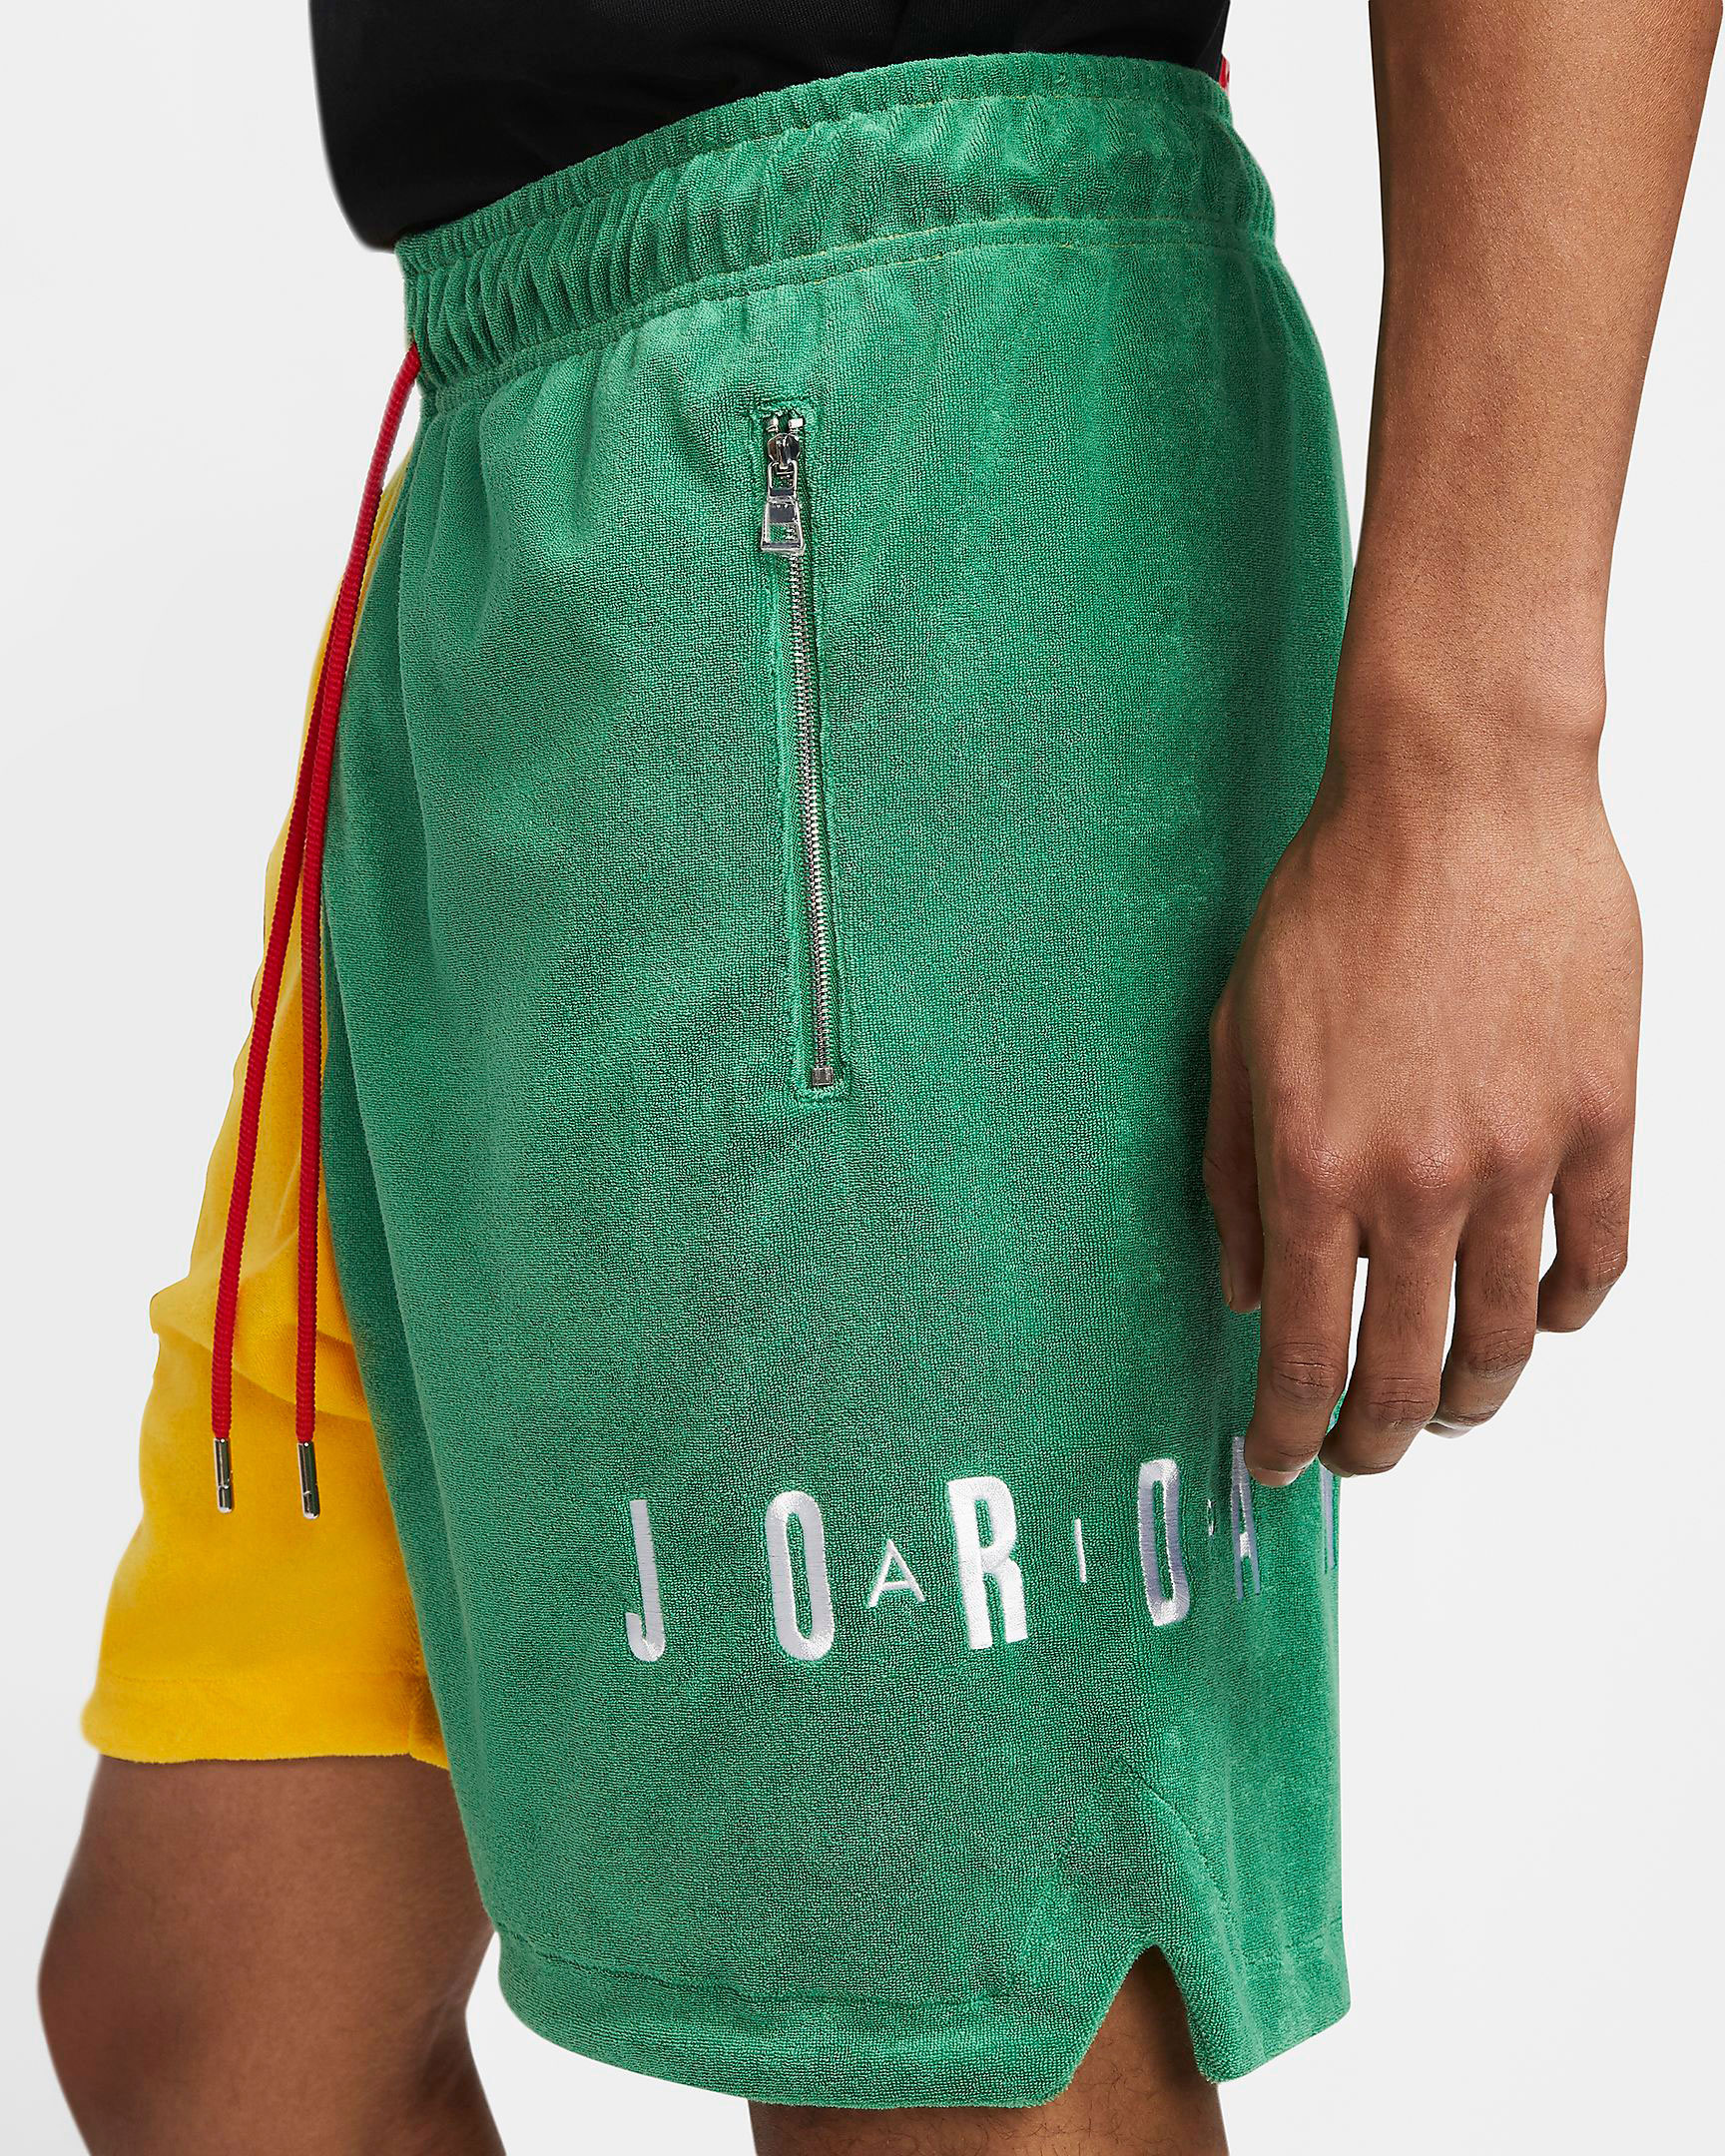 jordan-13-lucky-green-shorts-match-2